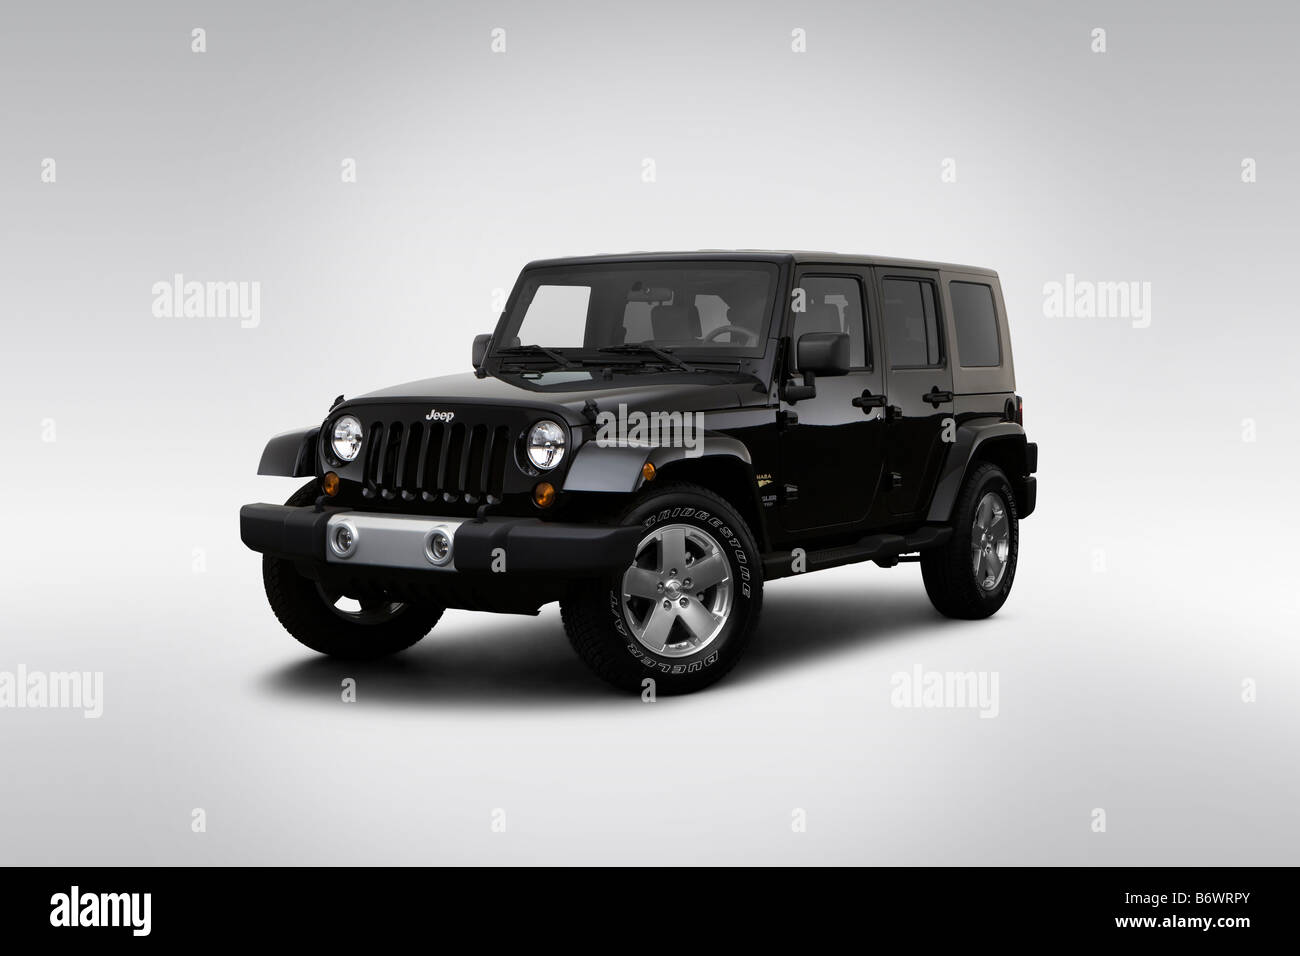 2009 Jeep Wrangler Unlimited Sahara in Black - Front angle view